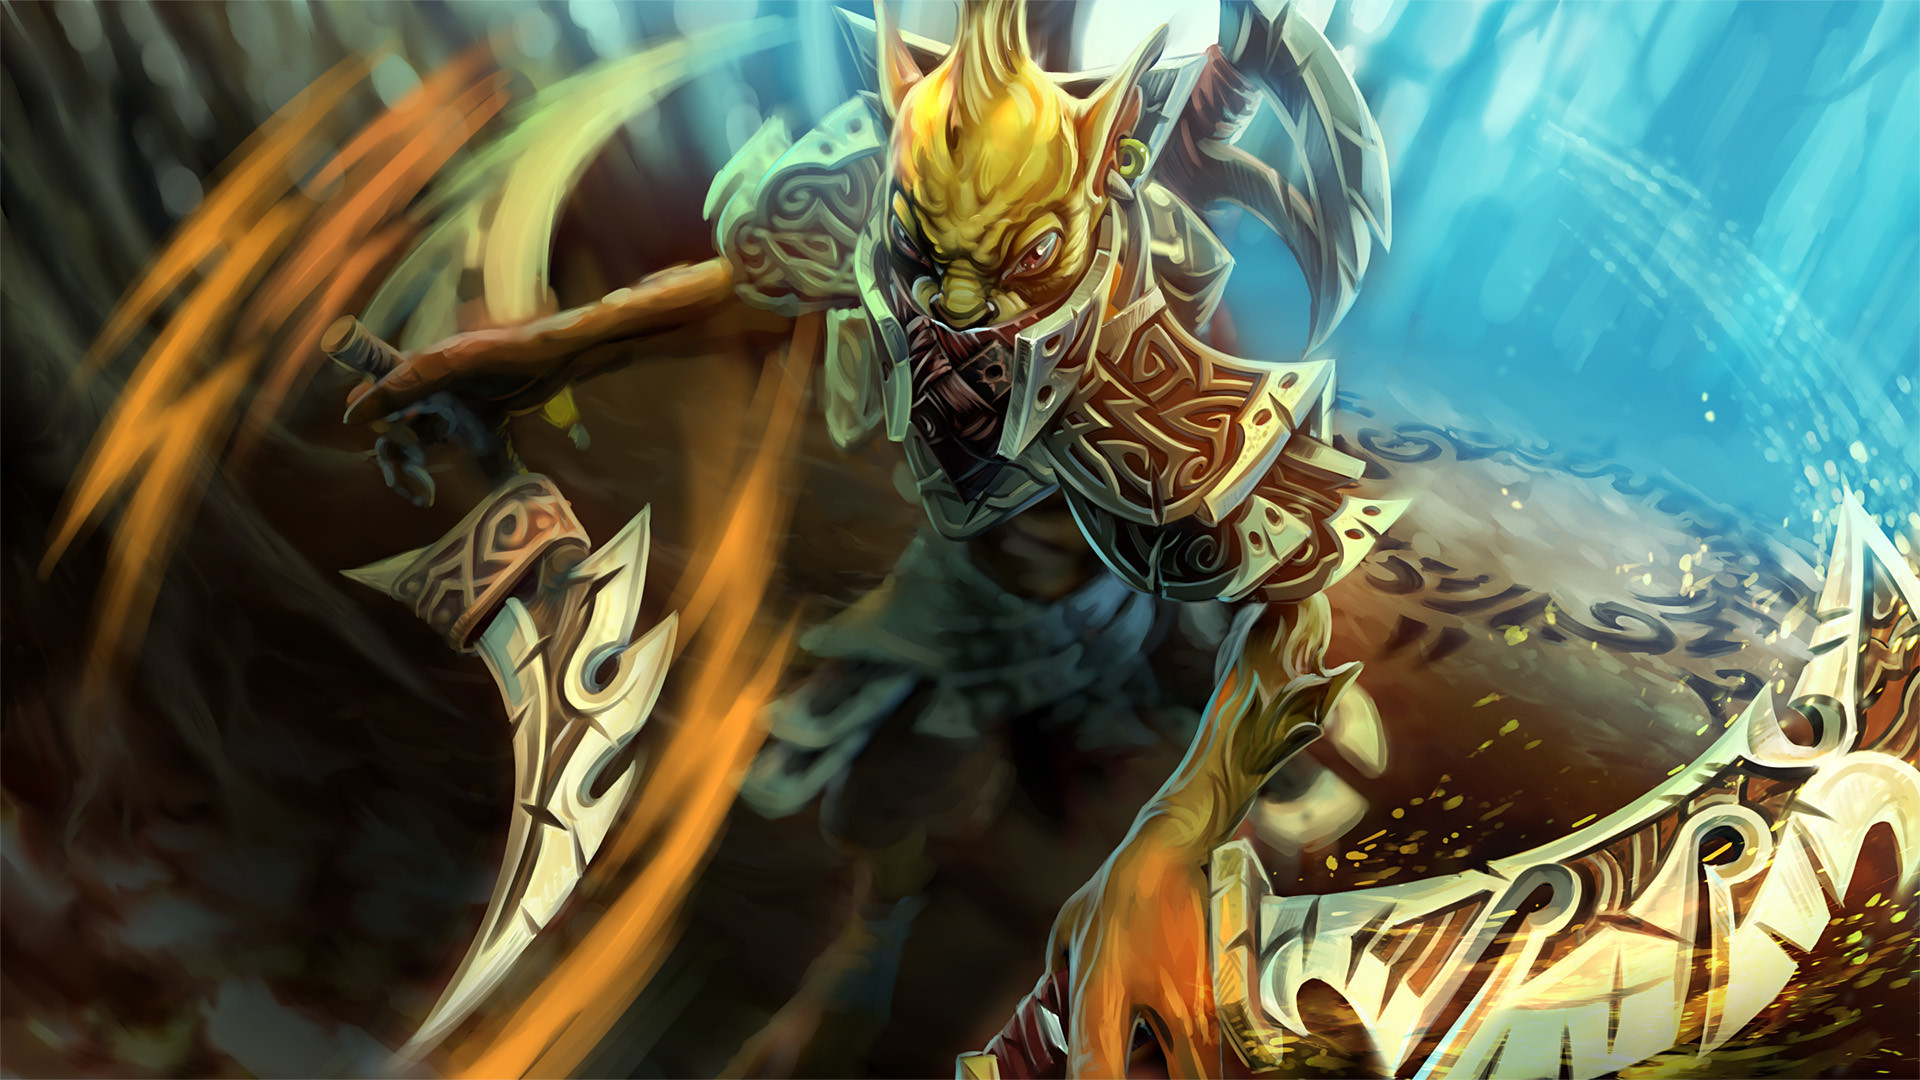 Res: 1920x1080, Bounty Hunter Wallpapers Dota 2 HD Wallpapers #2